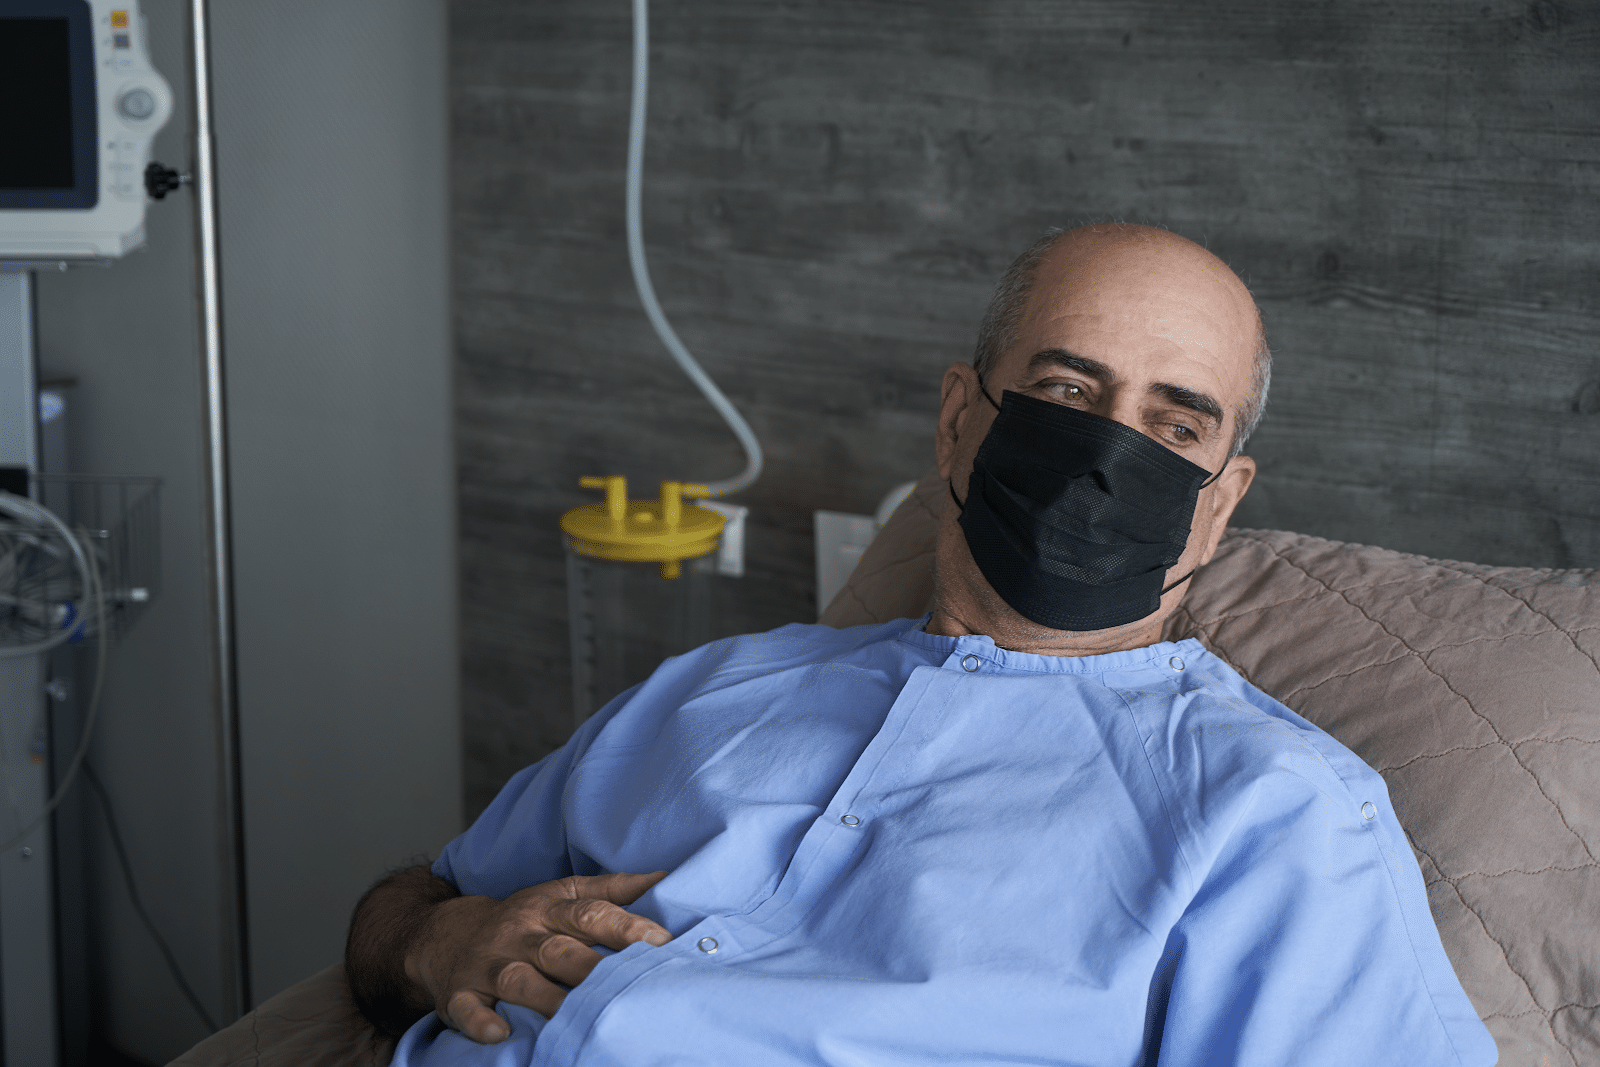 older-man-with-face-mask-on-hospital-bed